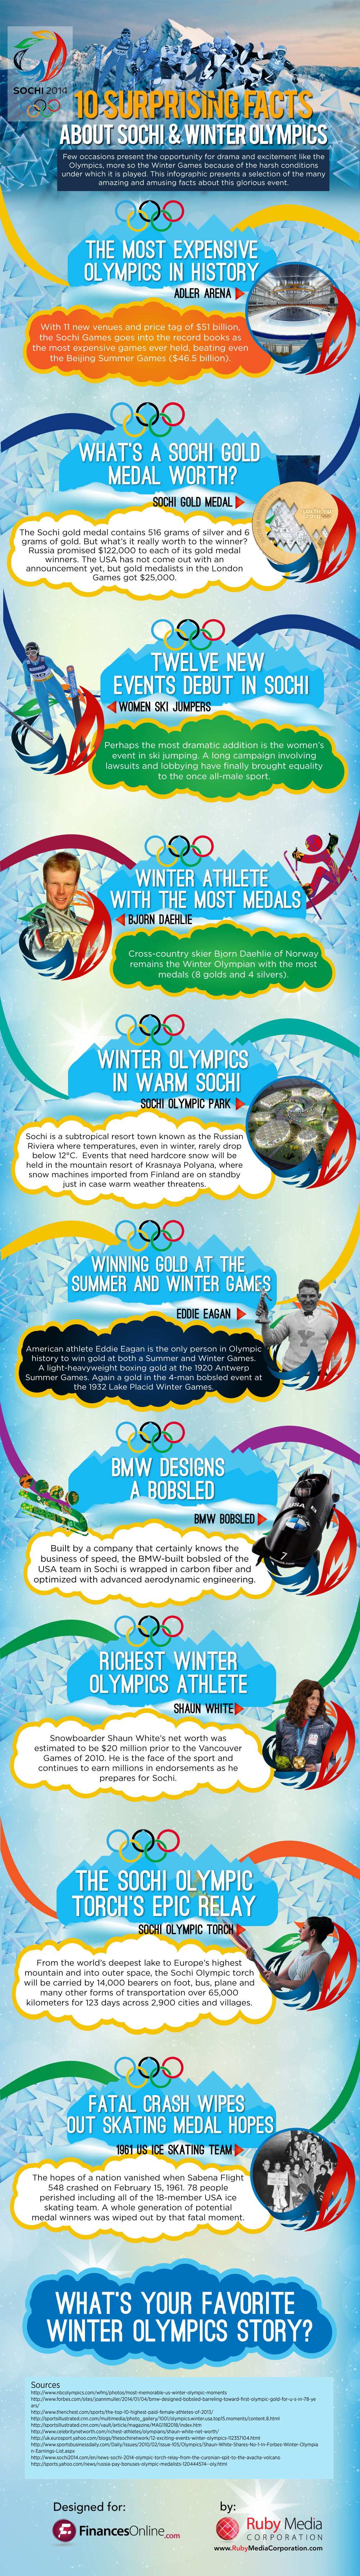 Russian Winter Olympics in Sochi 2014: Who Is The Richest Winter Athlete and 10 Other Amazing Facts